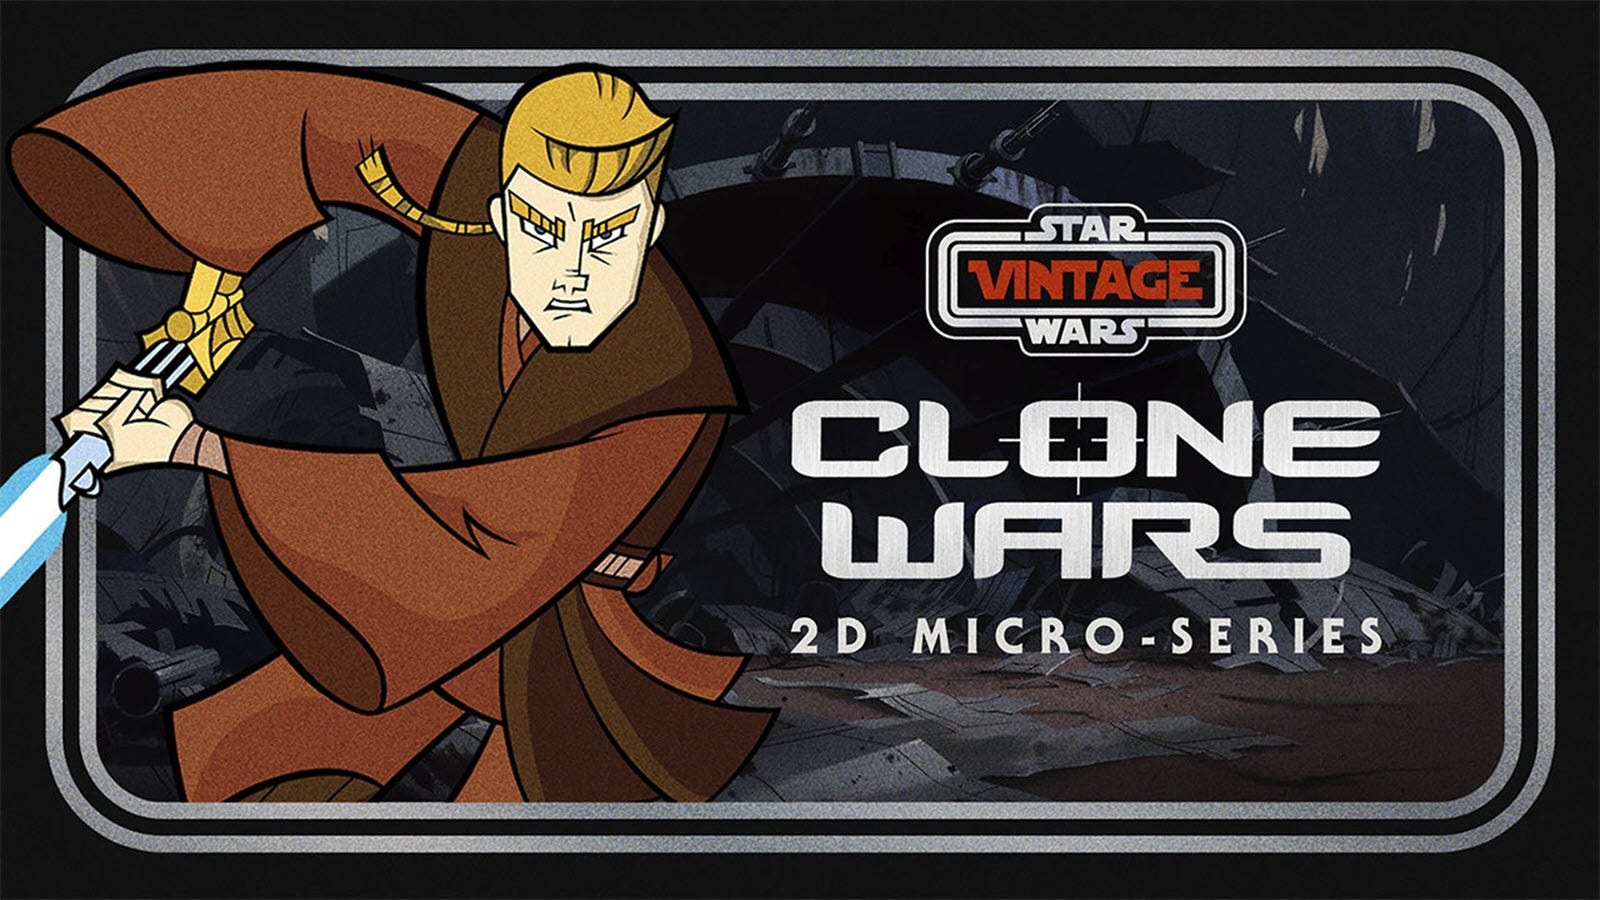 A still from the 'Star Wars Clone Wars' cartoon.